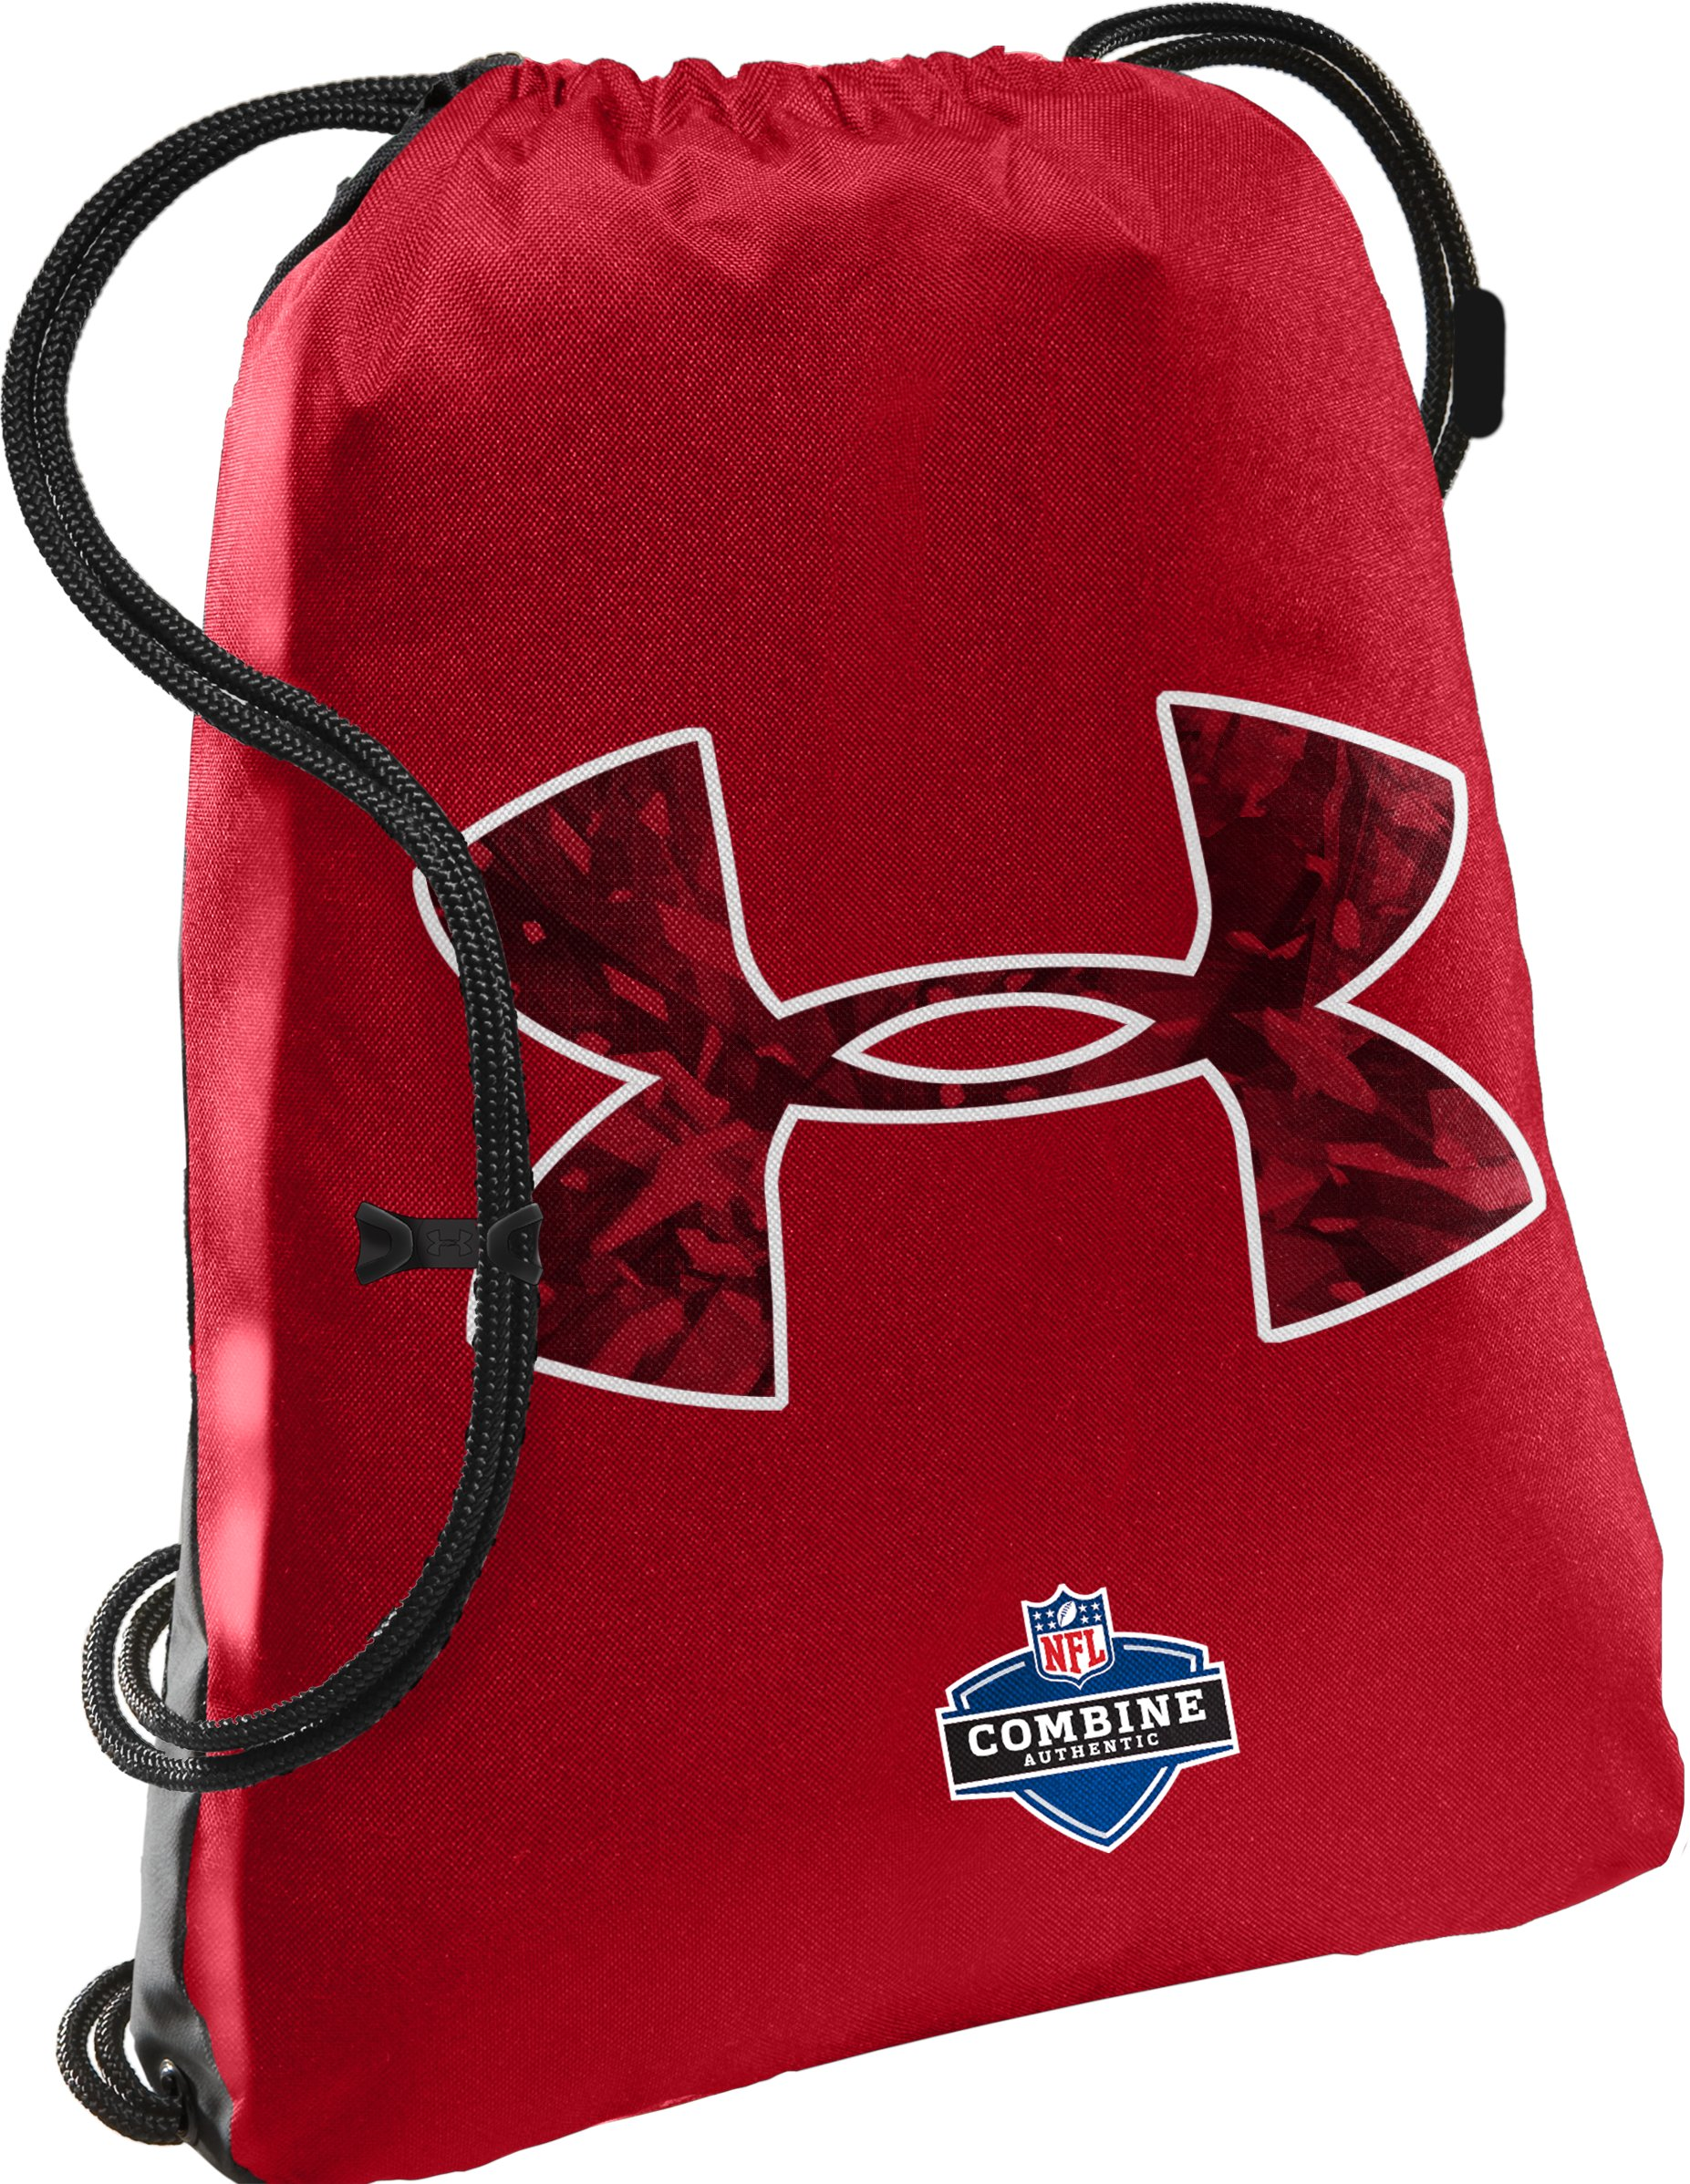 NFL Combine Authentic Tyro Sackpack, Red